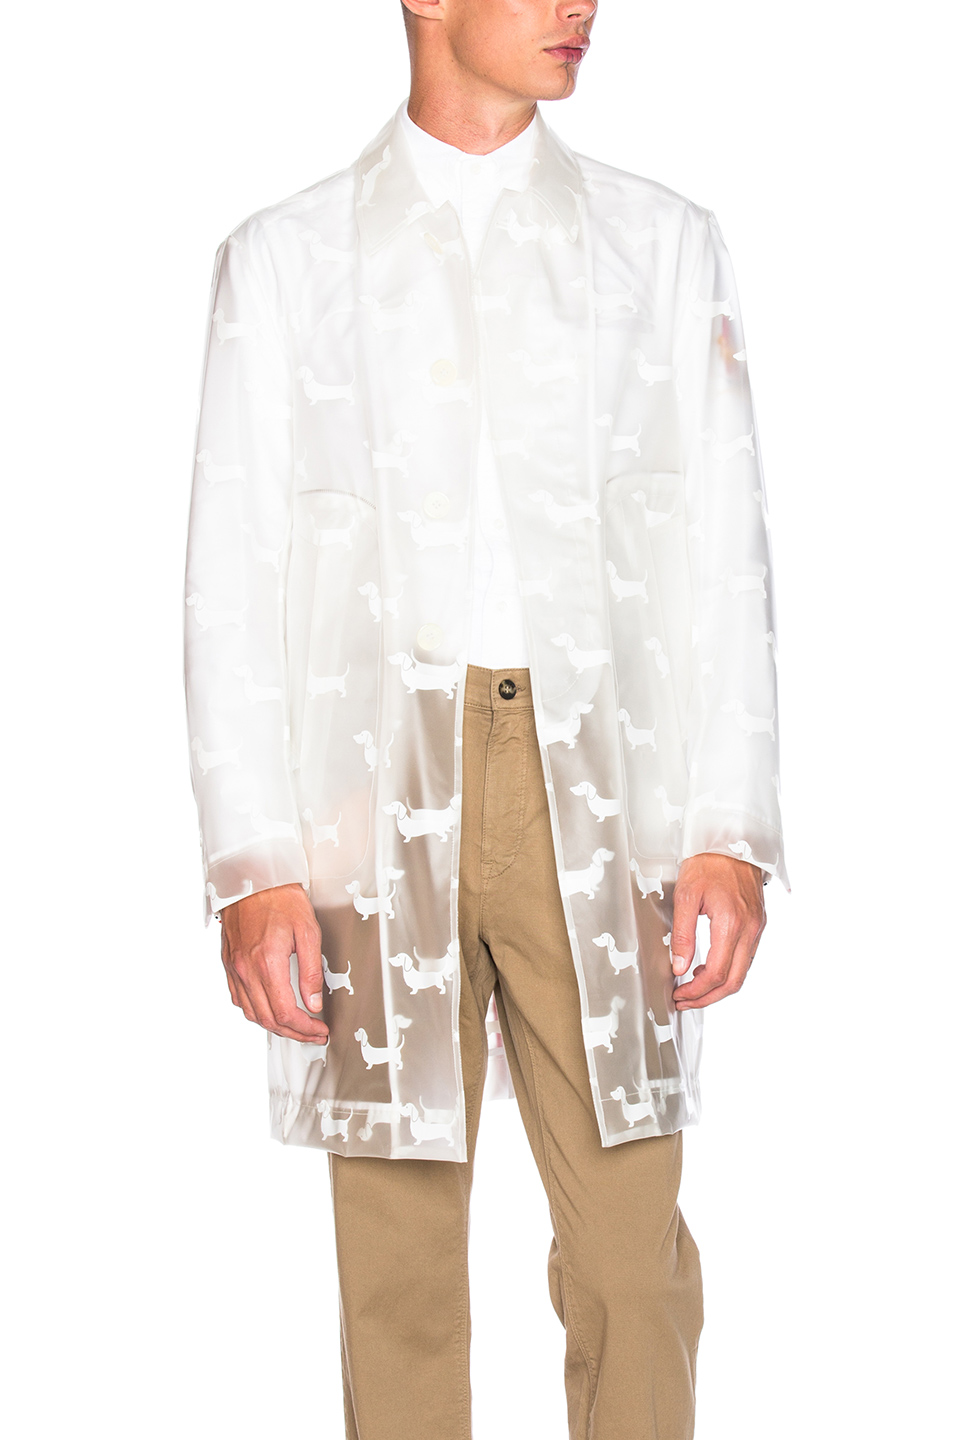 Thom Browne Hector Print Rain Coat in White,Animal Print